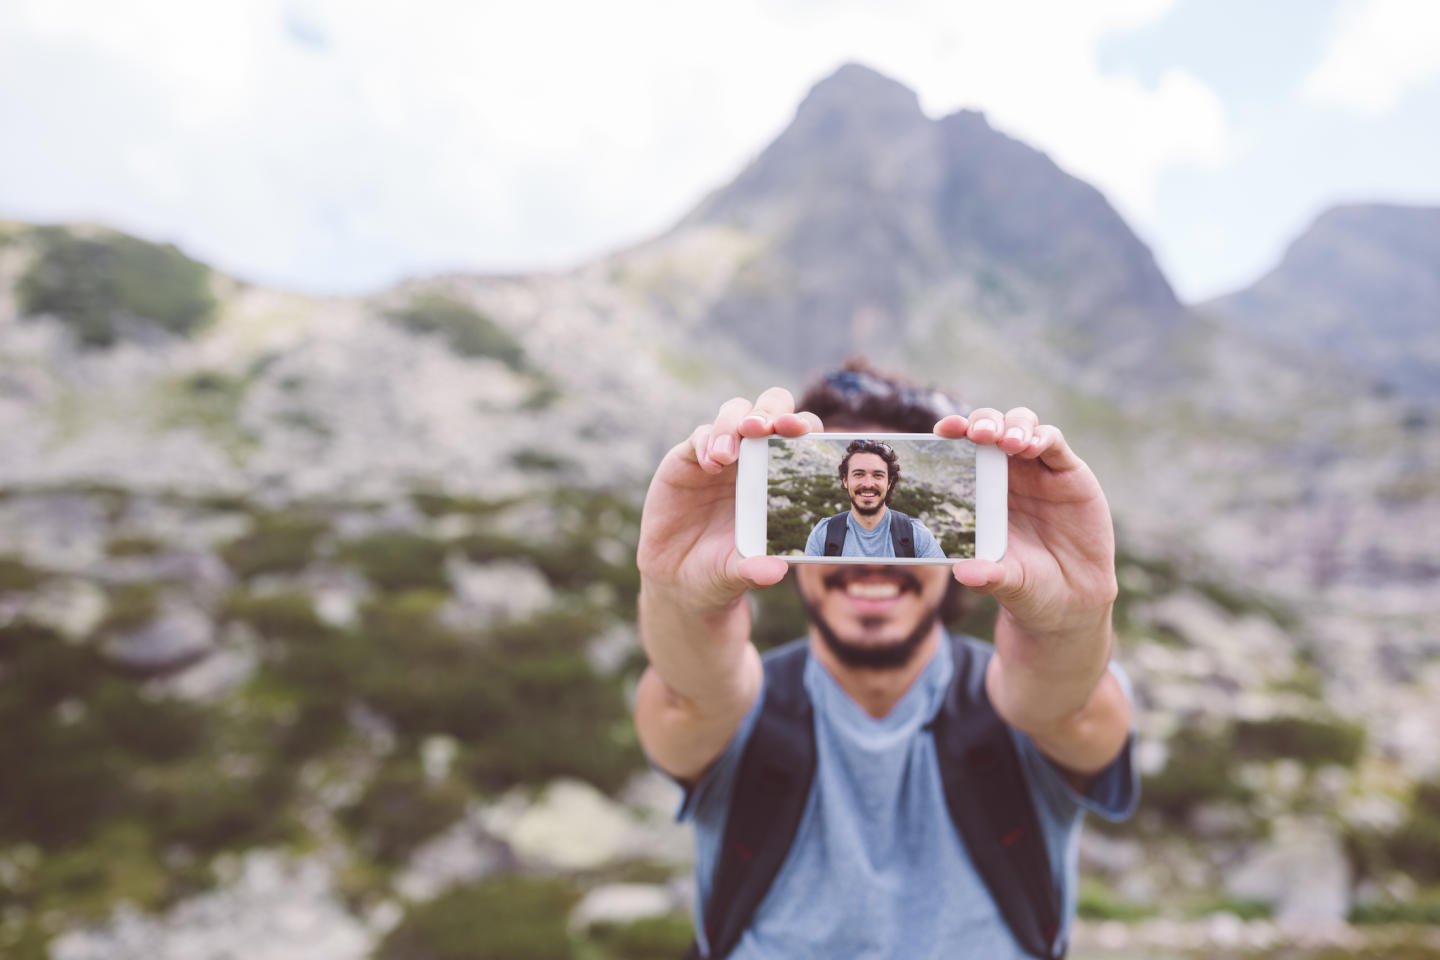 Man on mountain taking selfie